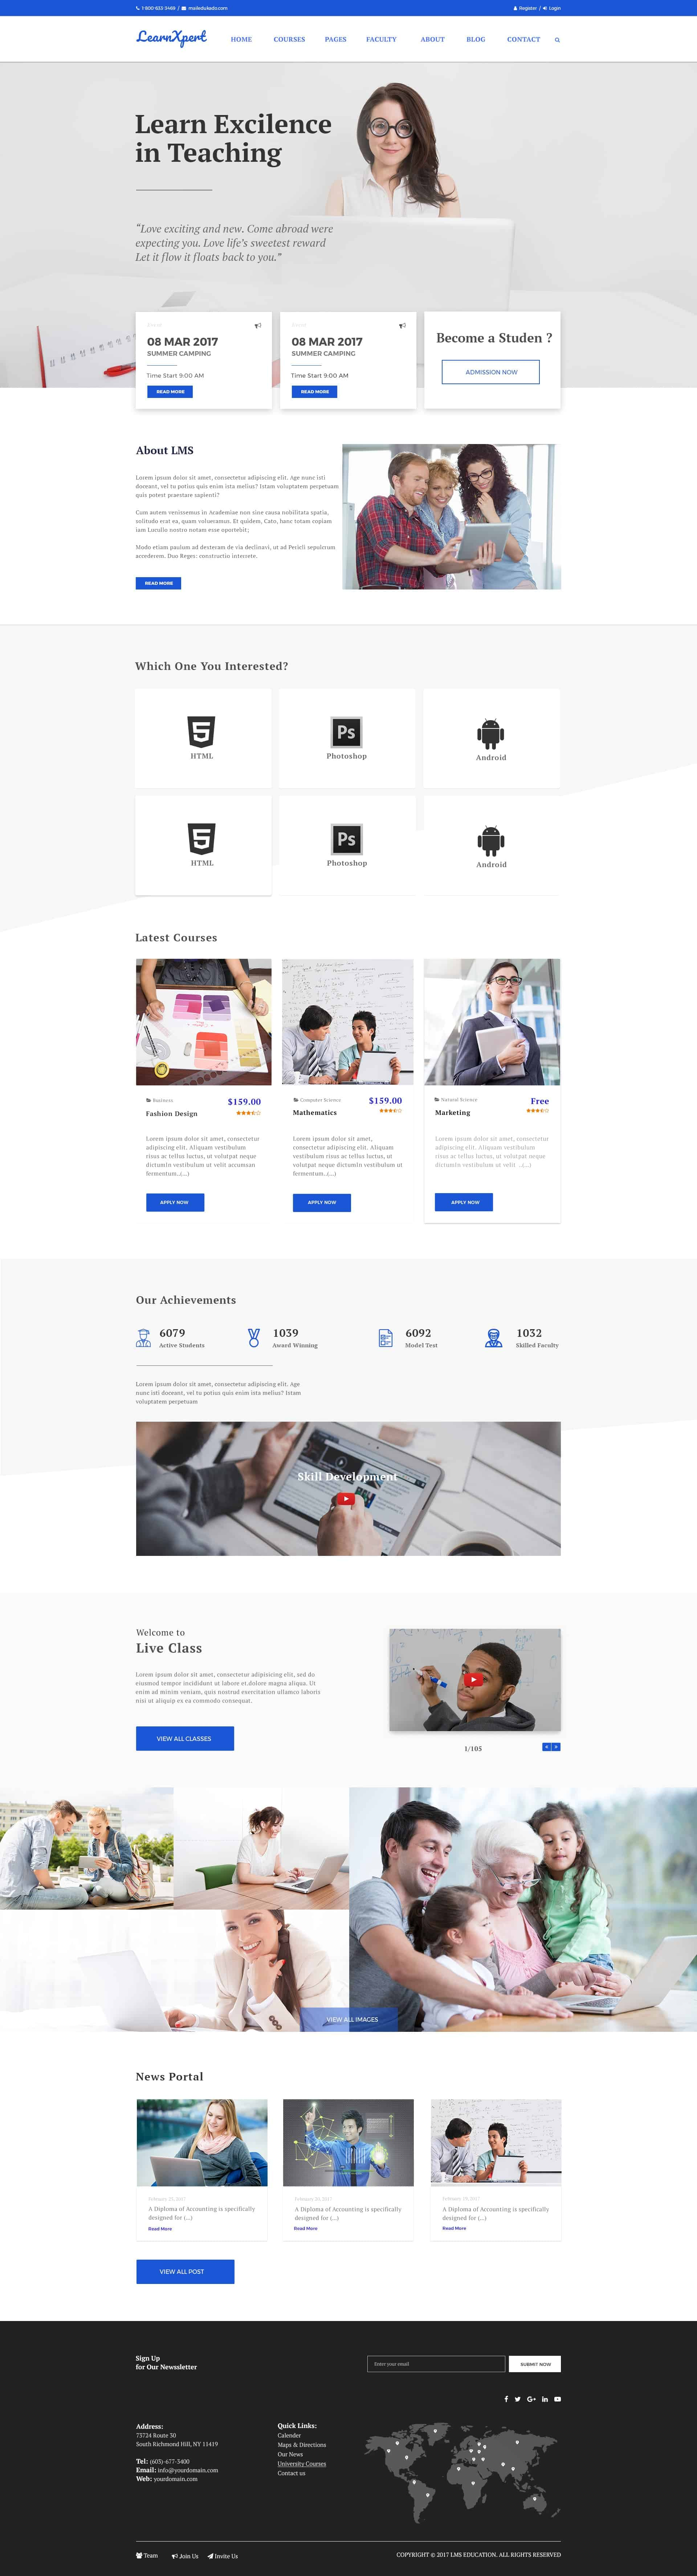 Free LMS Education and Website Template 1